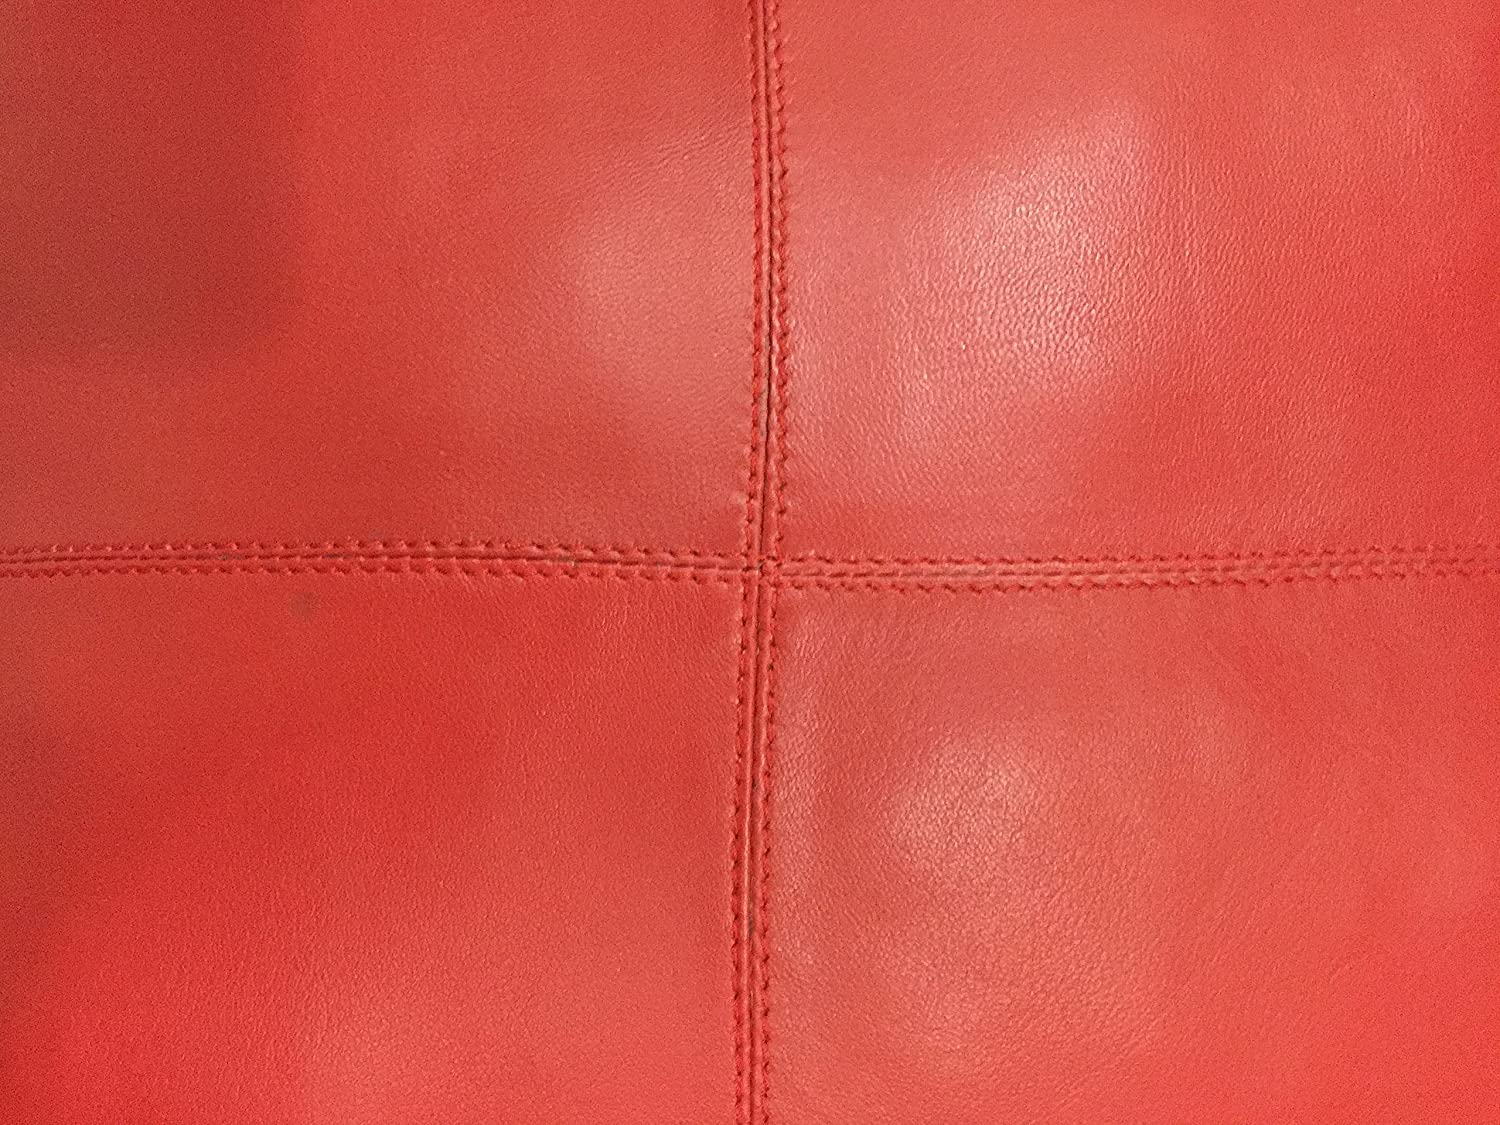 LEATHER FARMS Thick genuine Leather Pillow Cover RED Decorative For Couch Throw Pillow Case RED Leather Cushion Cover Solid Color 18x18